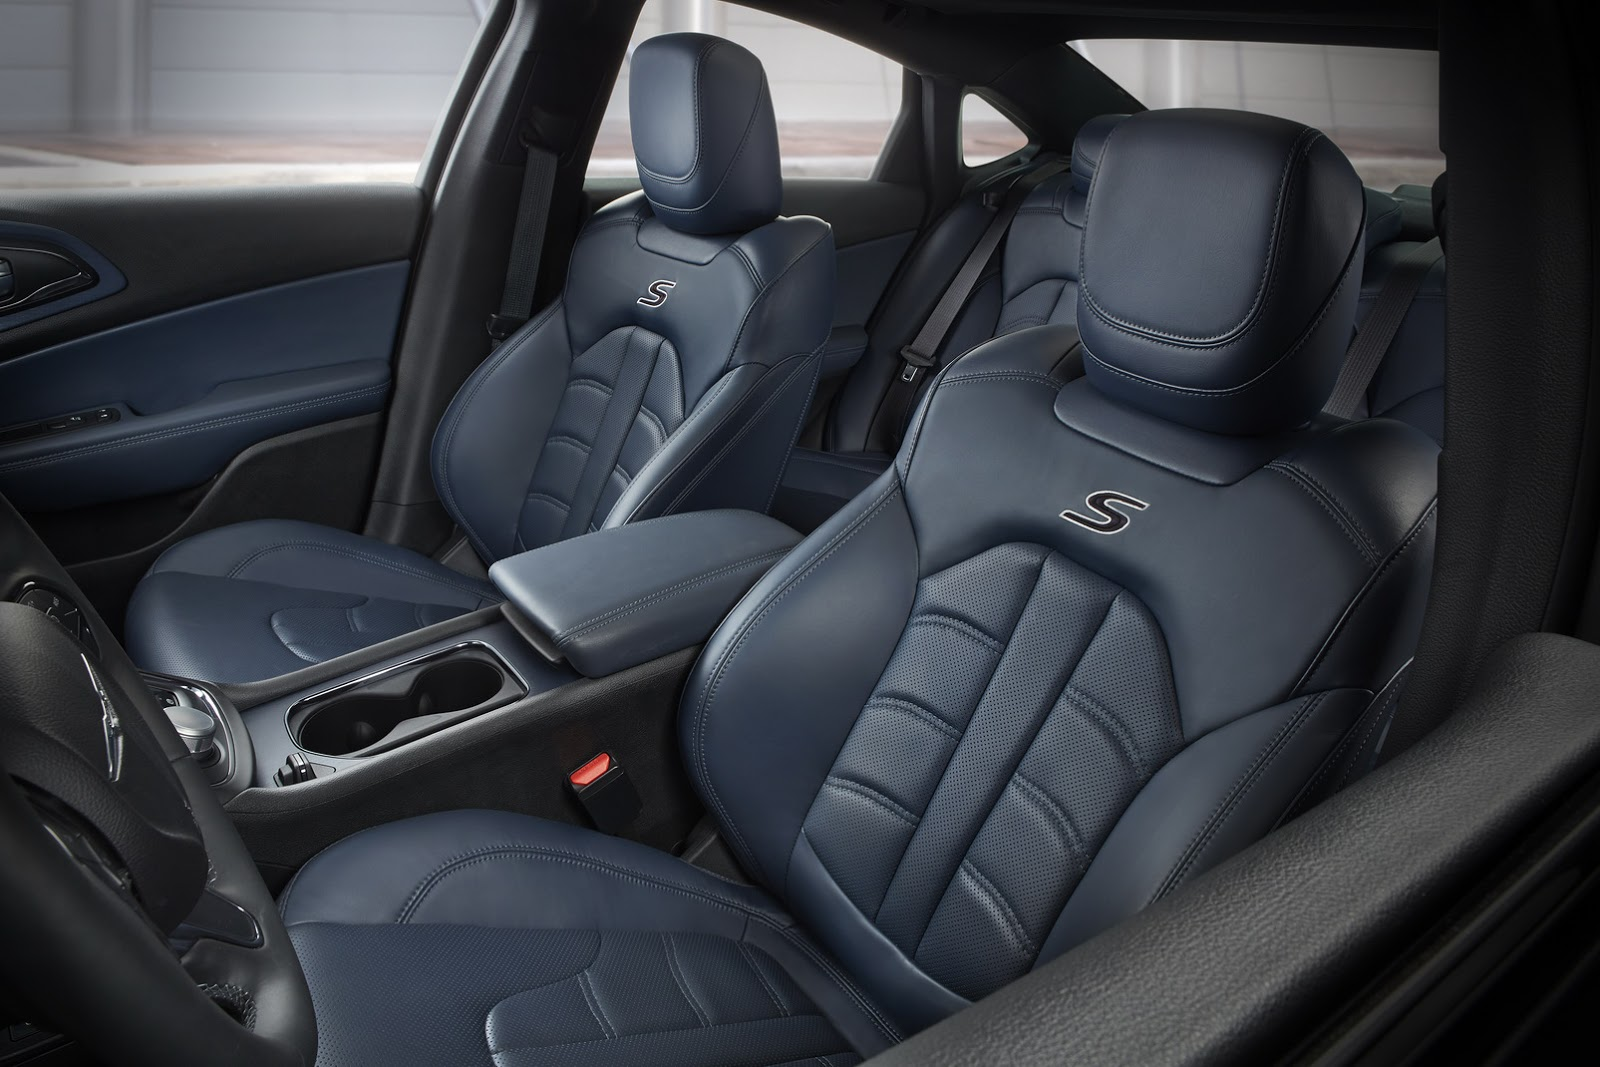 new ambassador car release date2015 Chrysler 200 Adds Two New Interior Colors